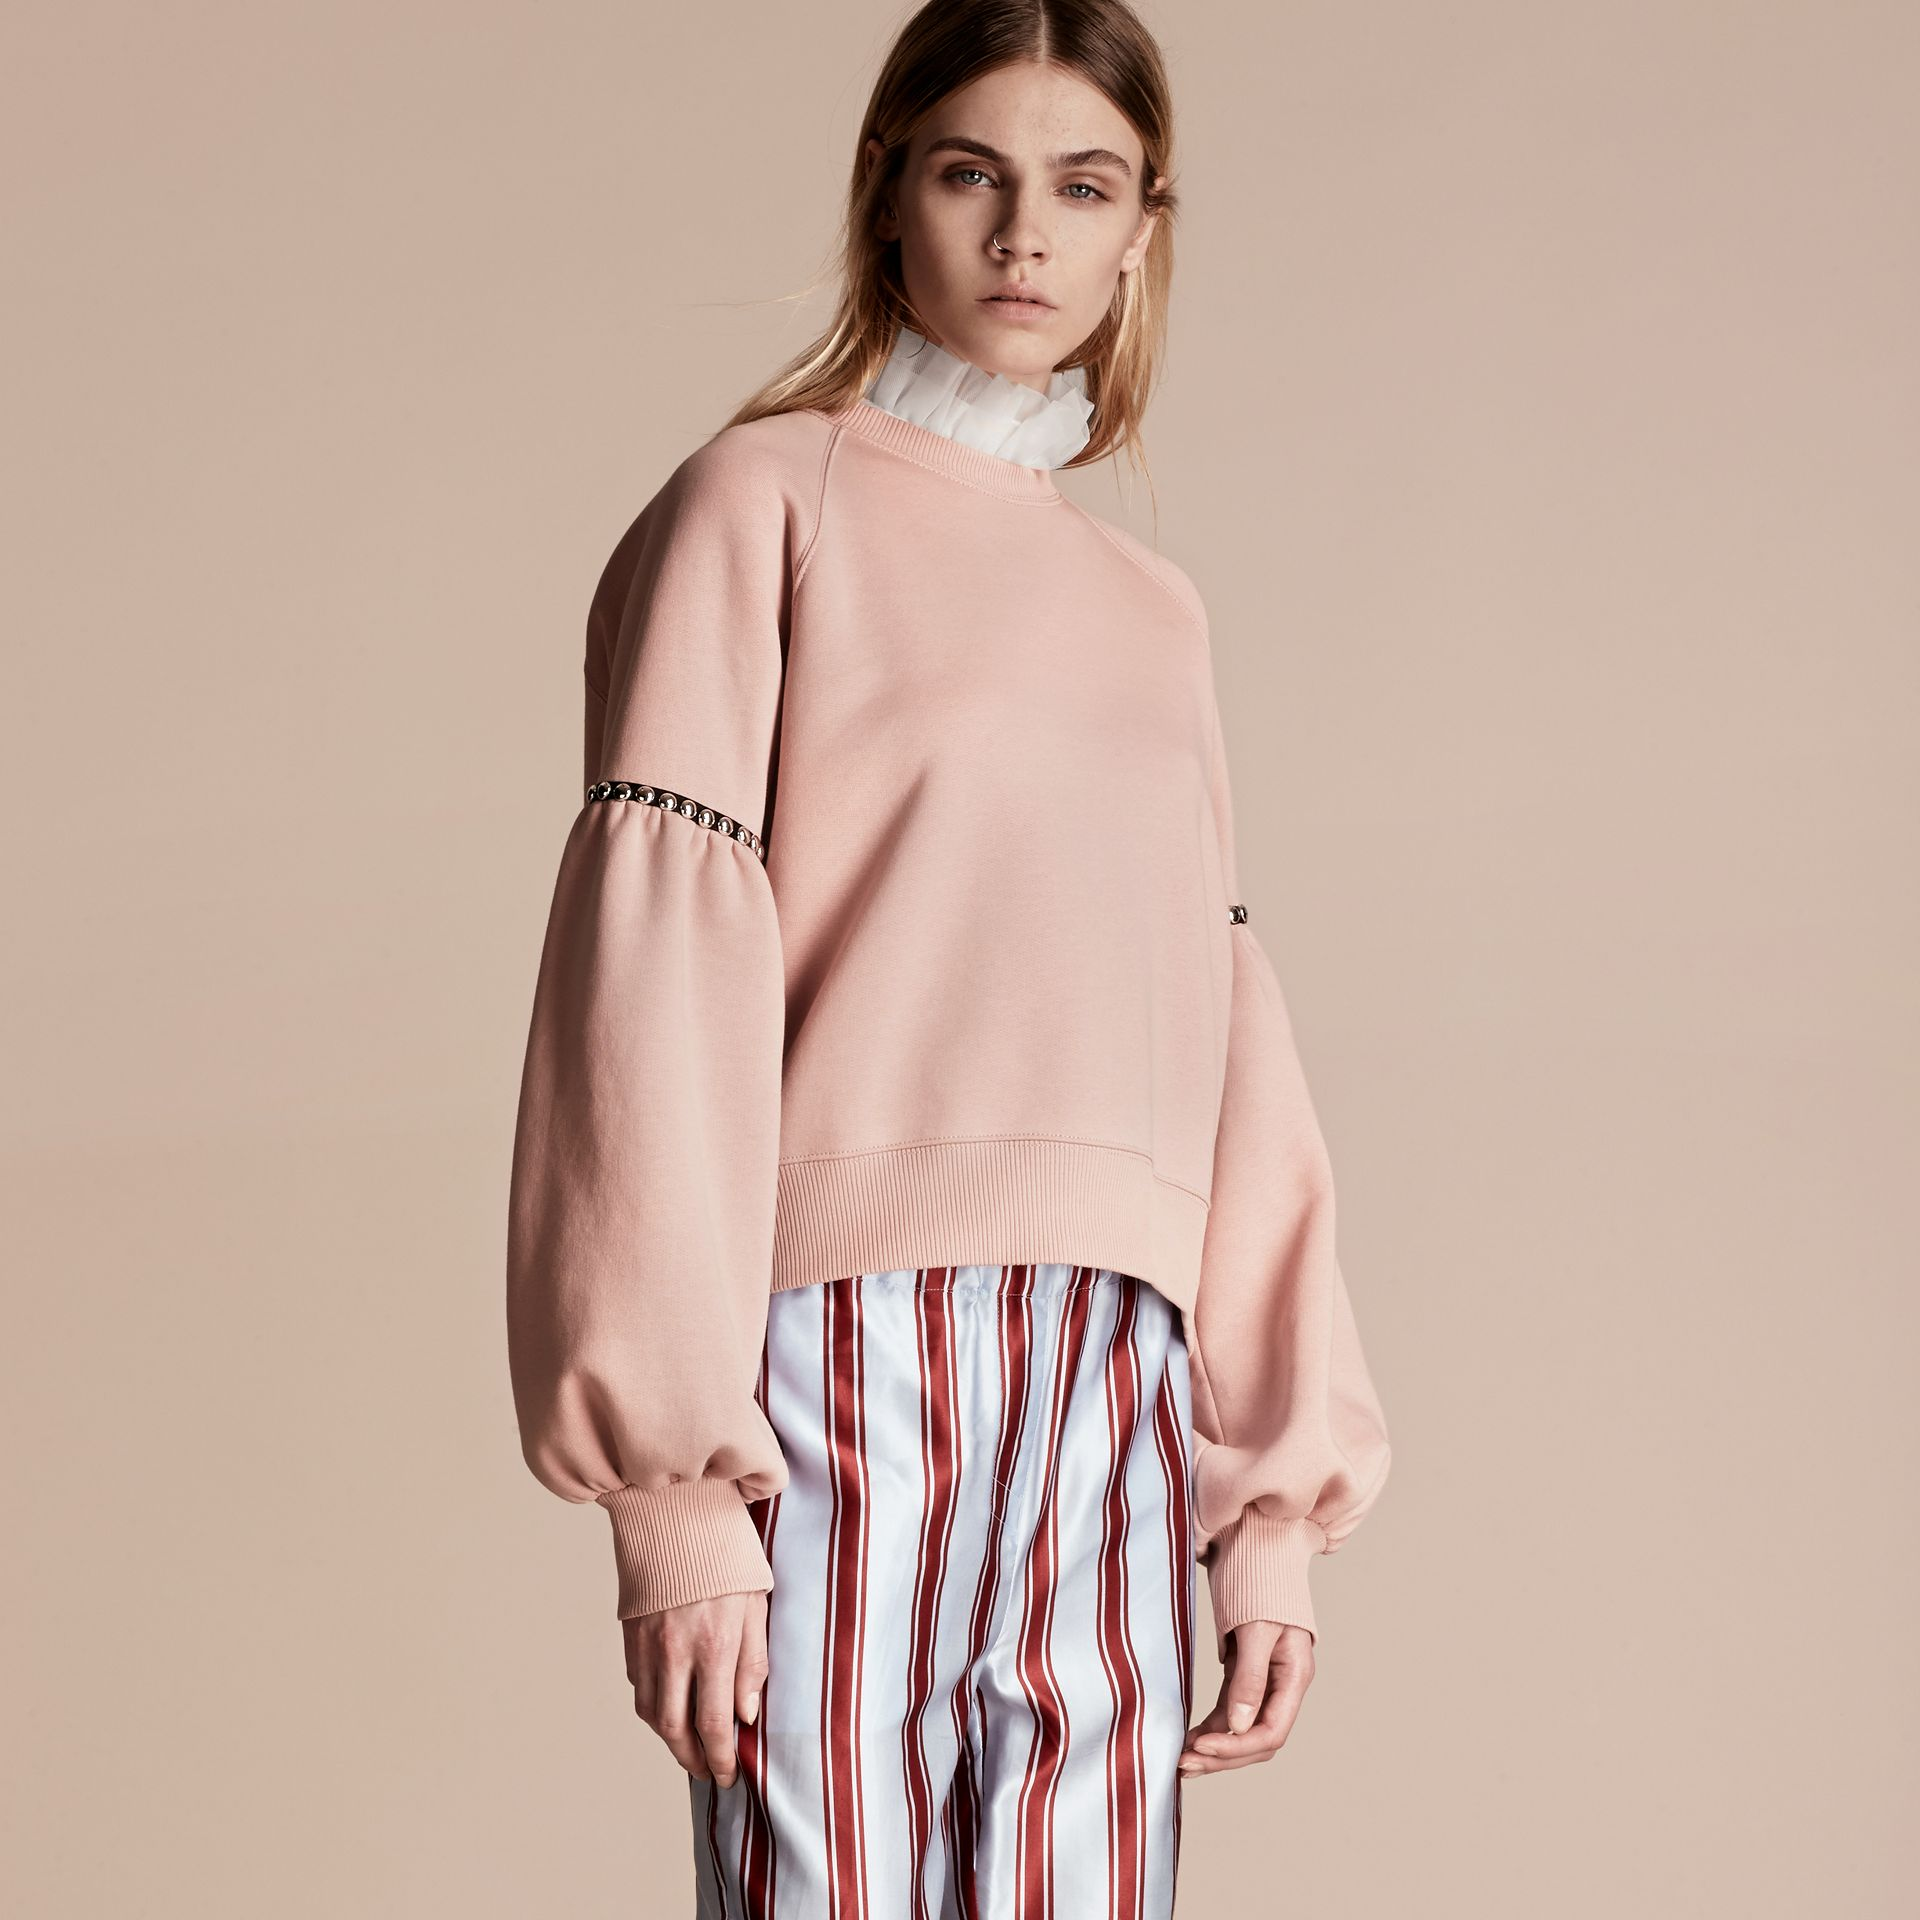 Rose cendré Sweat-shirt en jersey de coton mélangé avec manches bouffantes - photo de la galerie 1